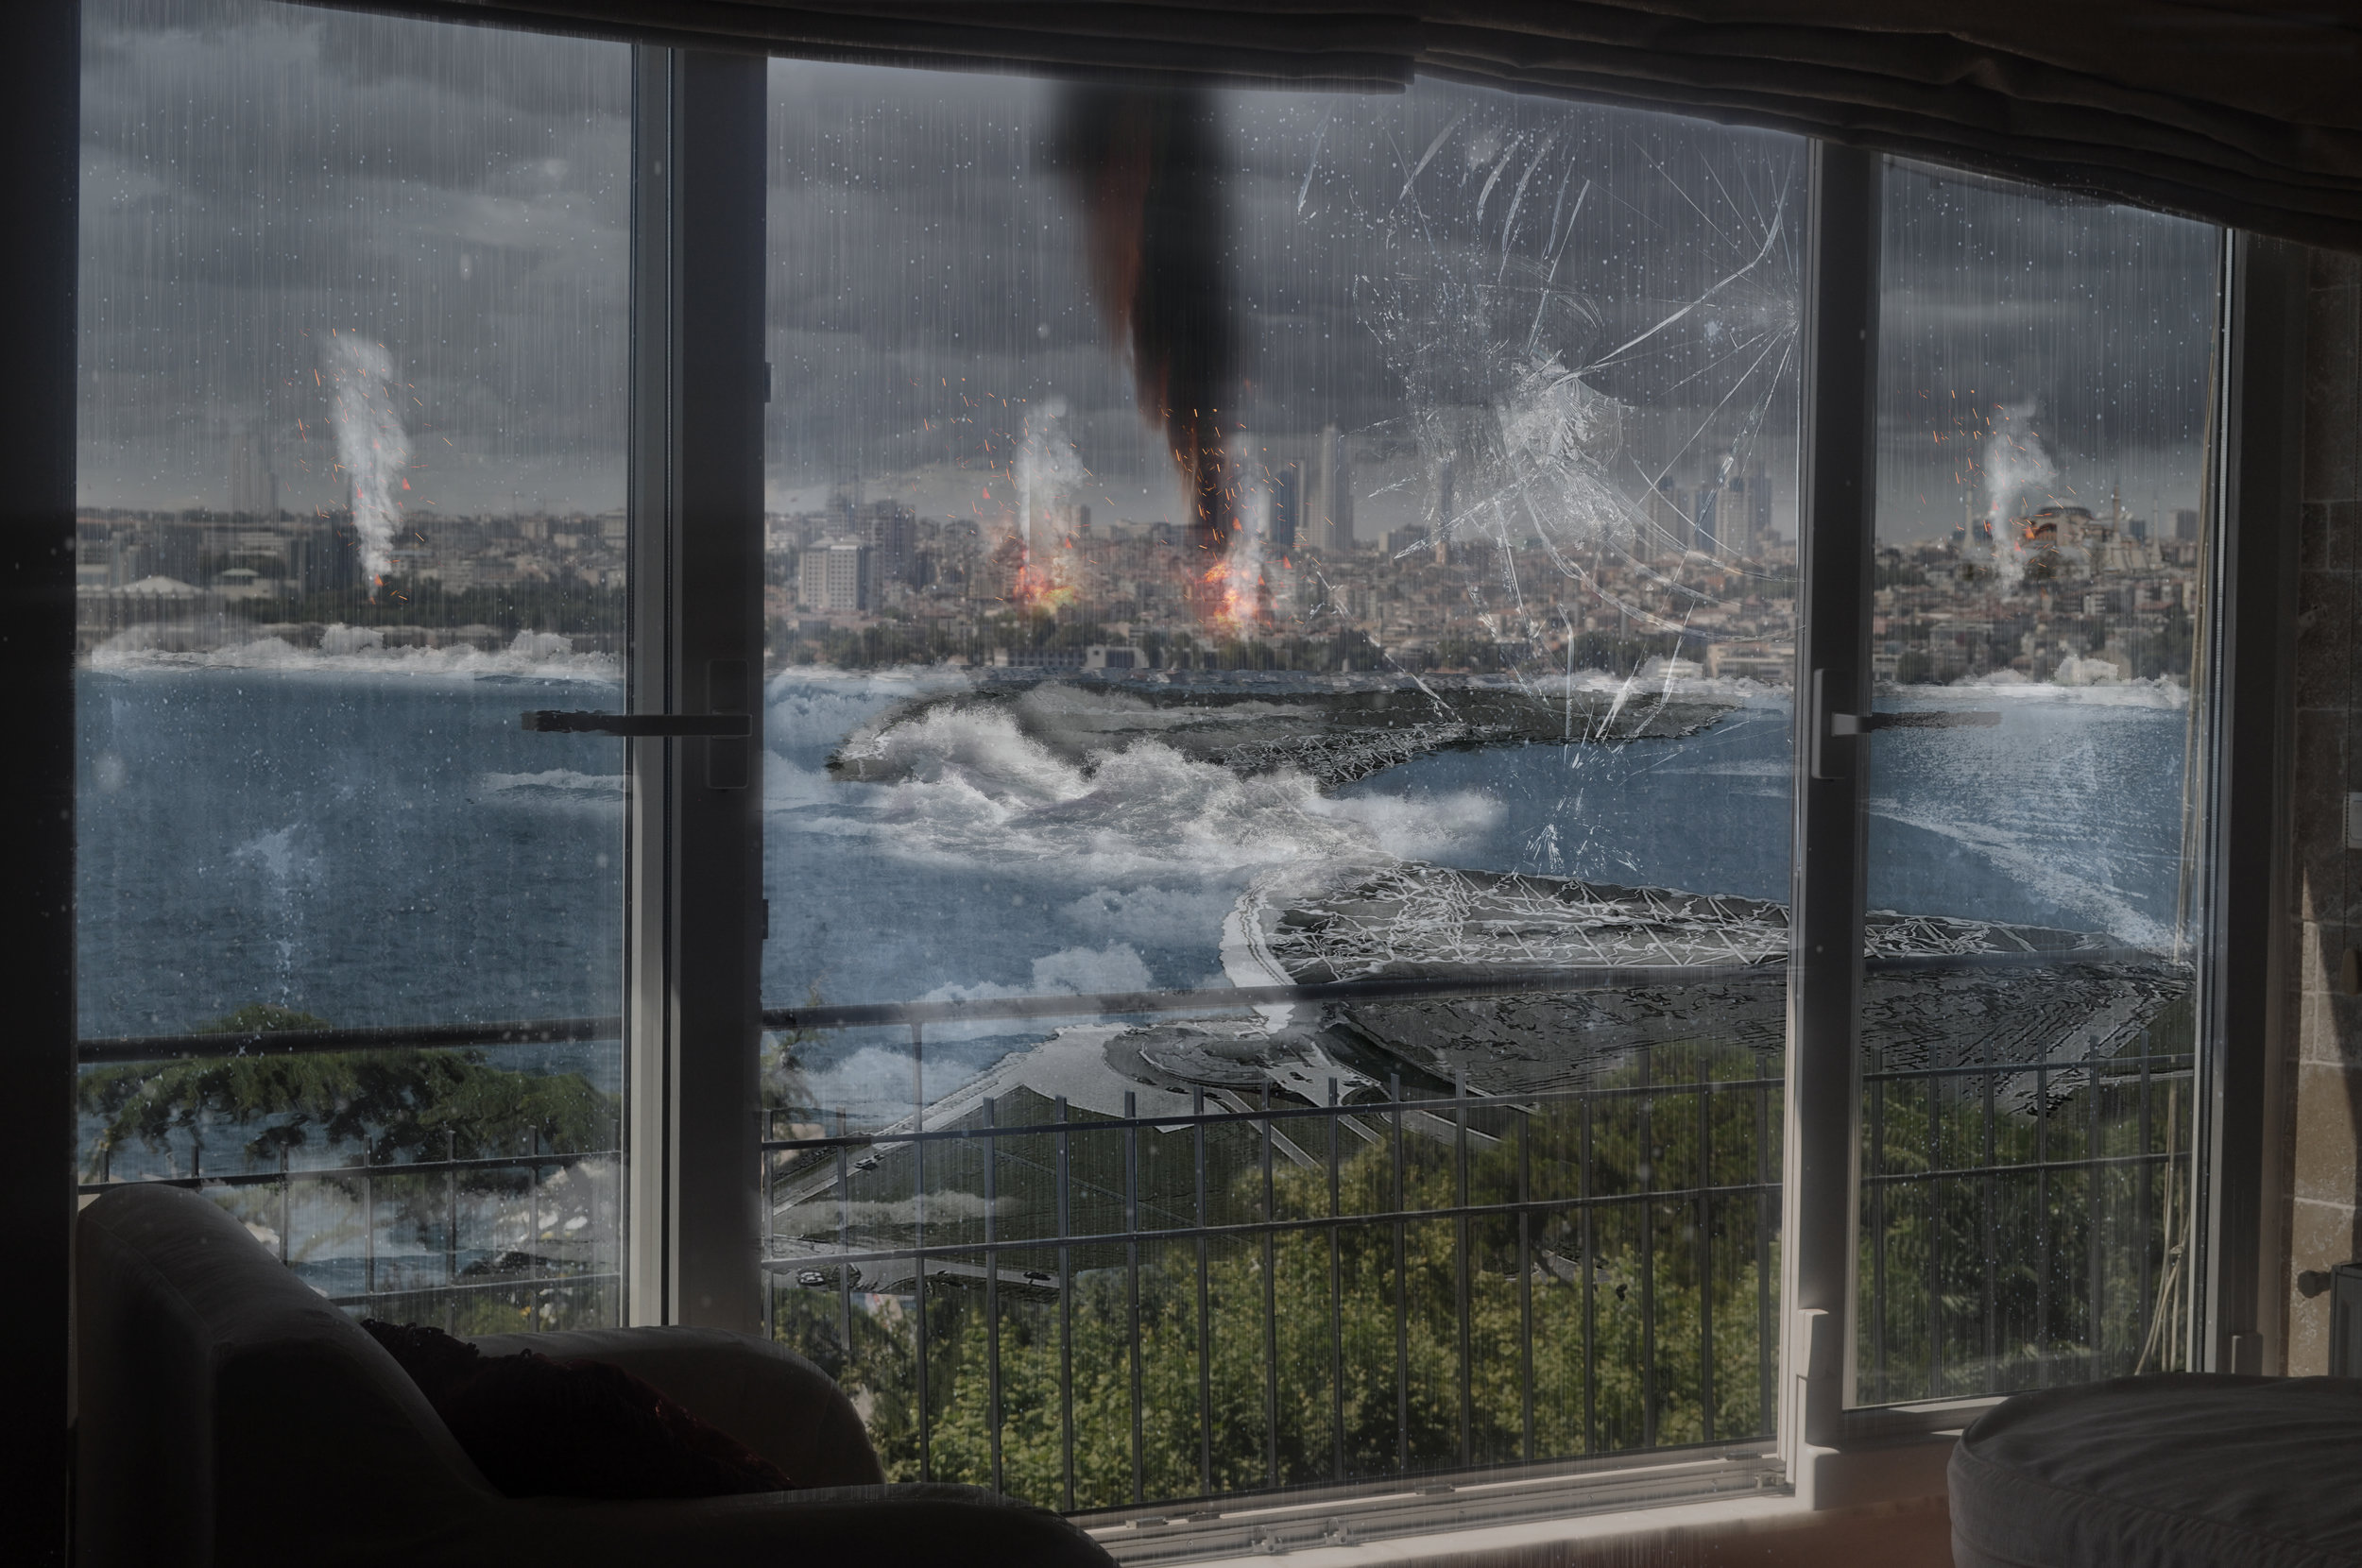 Bosphorus, after the expected earthquake in Istanbul in 50 years